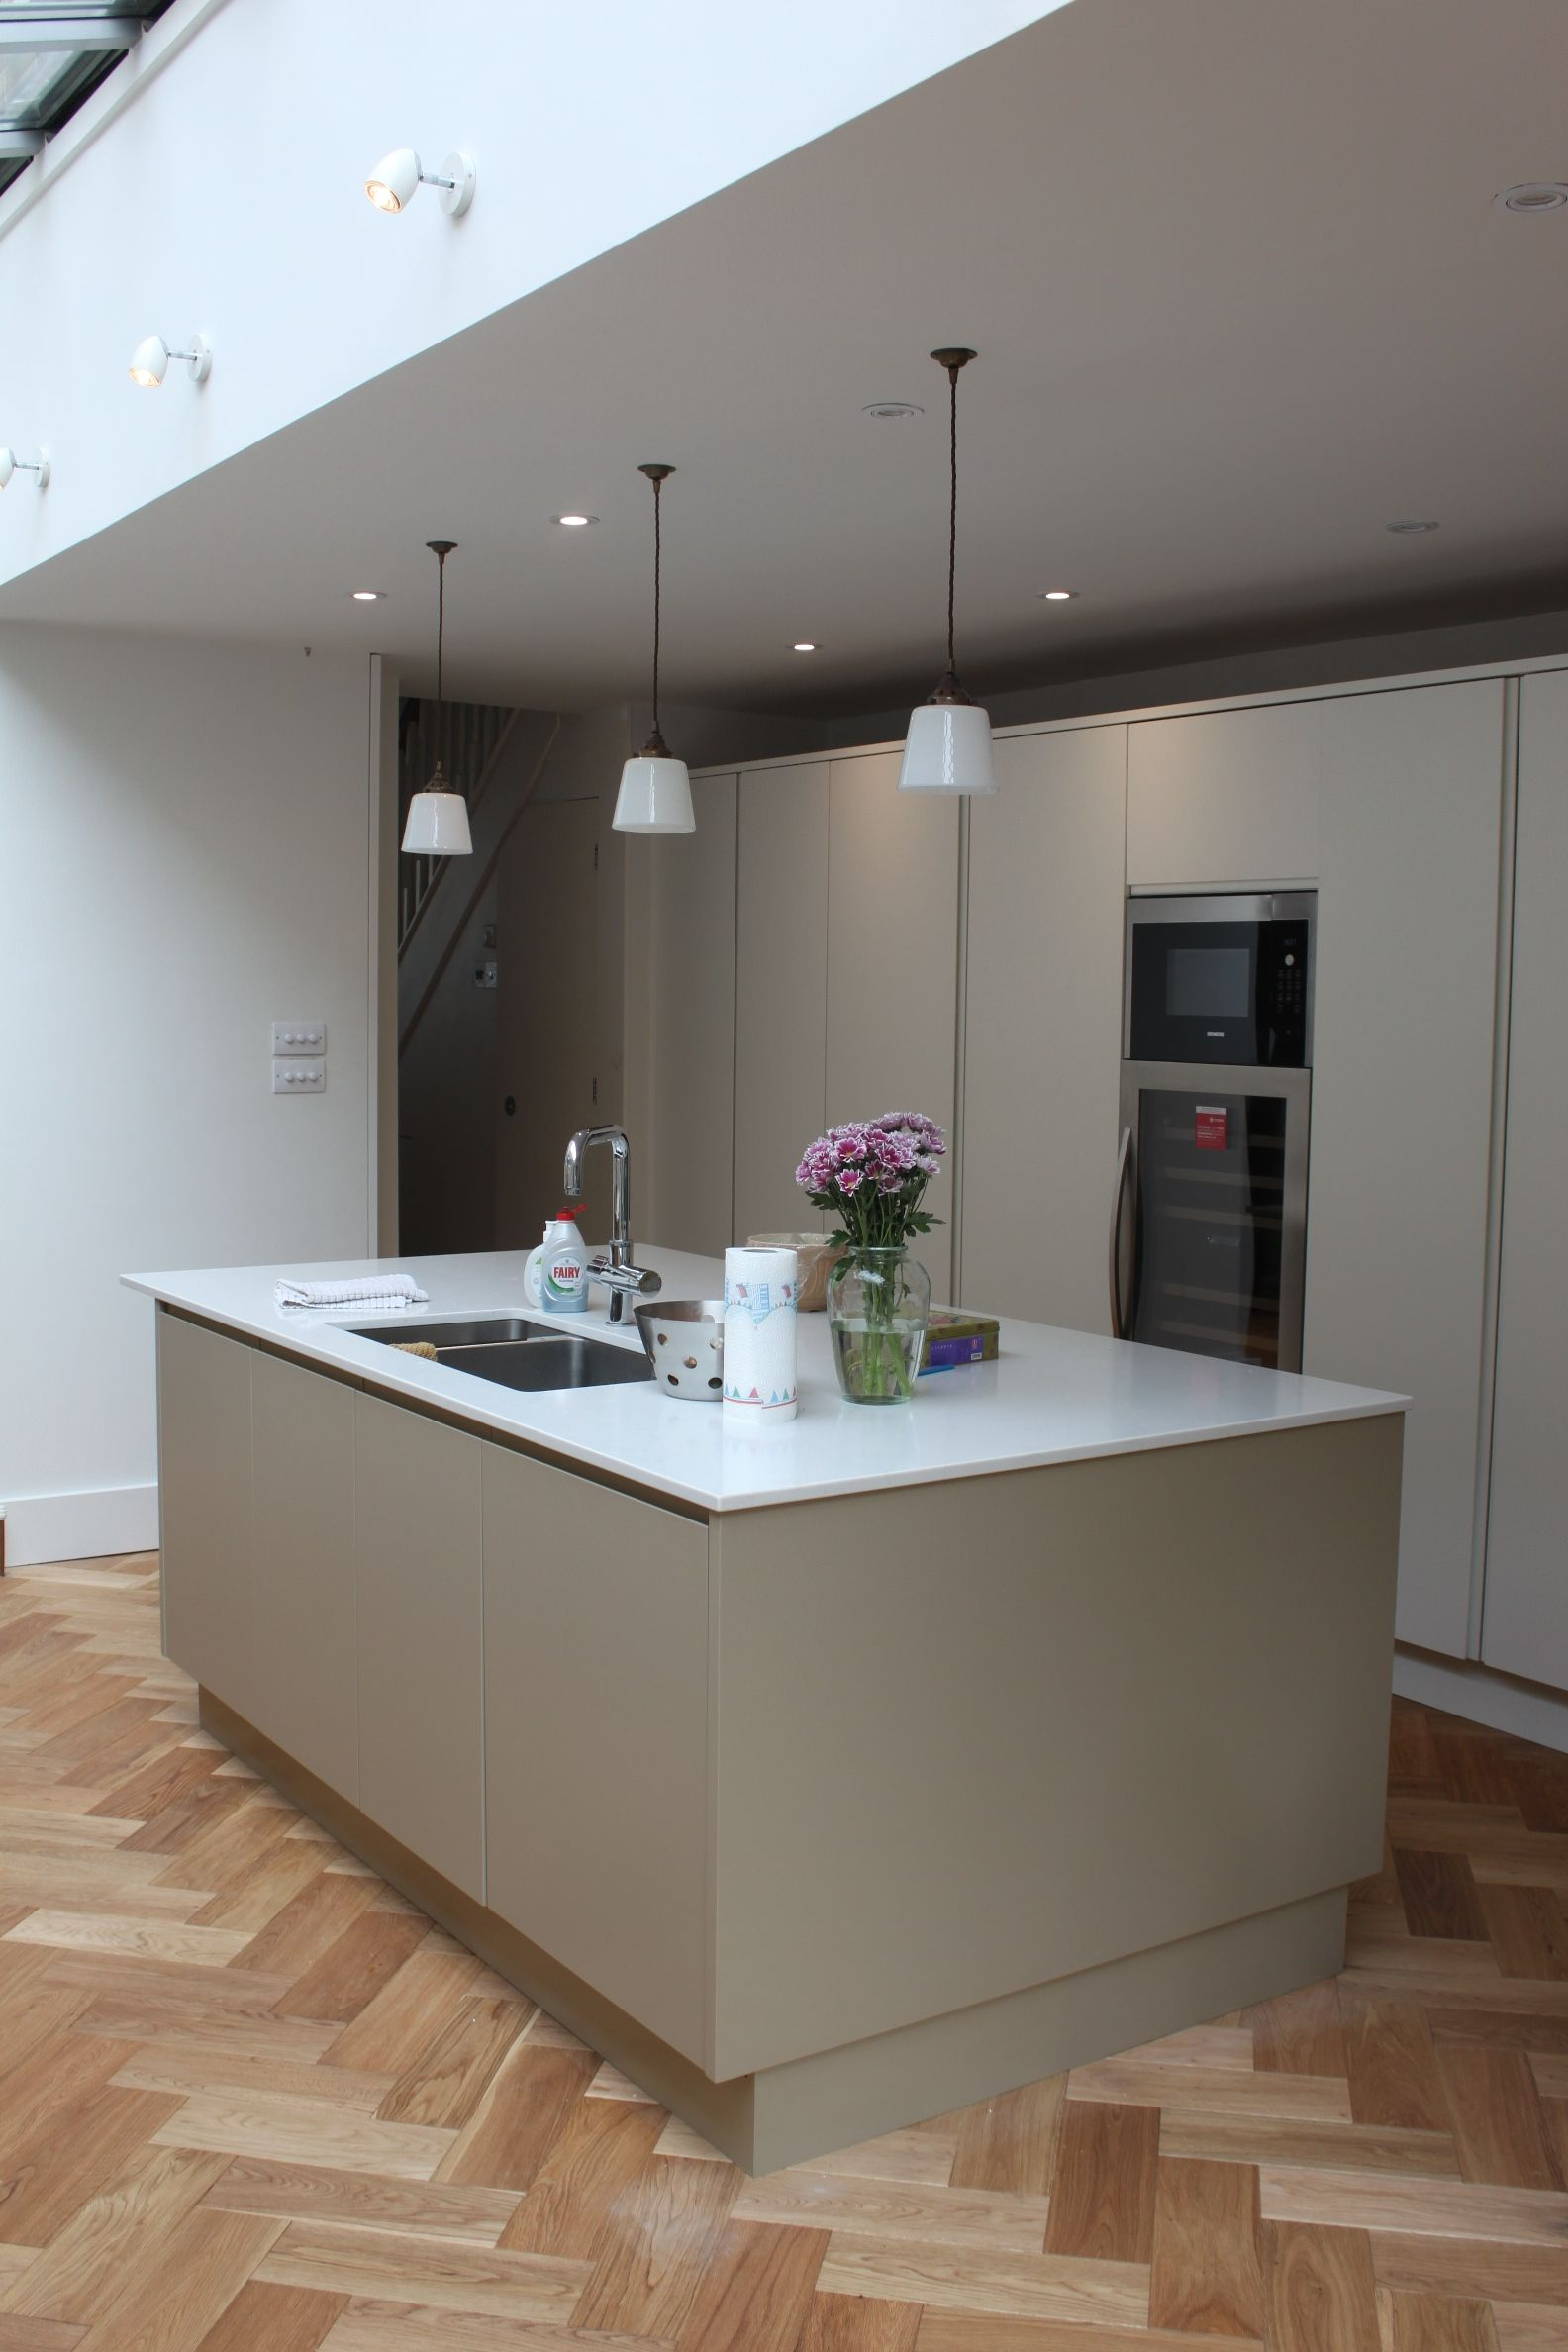 Pure handleless kitchen cabinetry from John Lewis of Hungerford ...